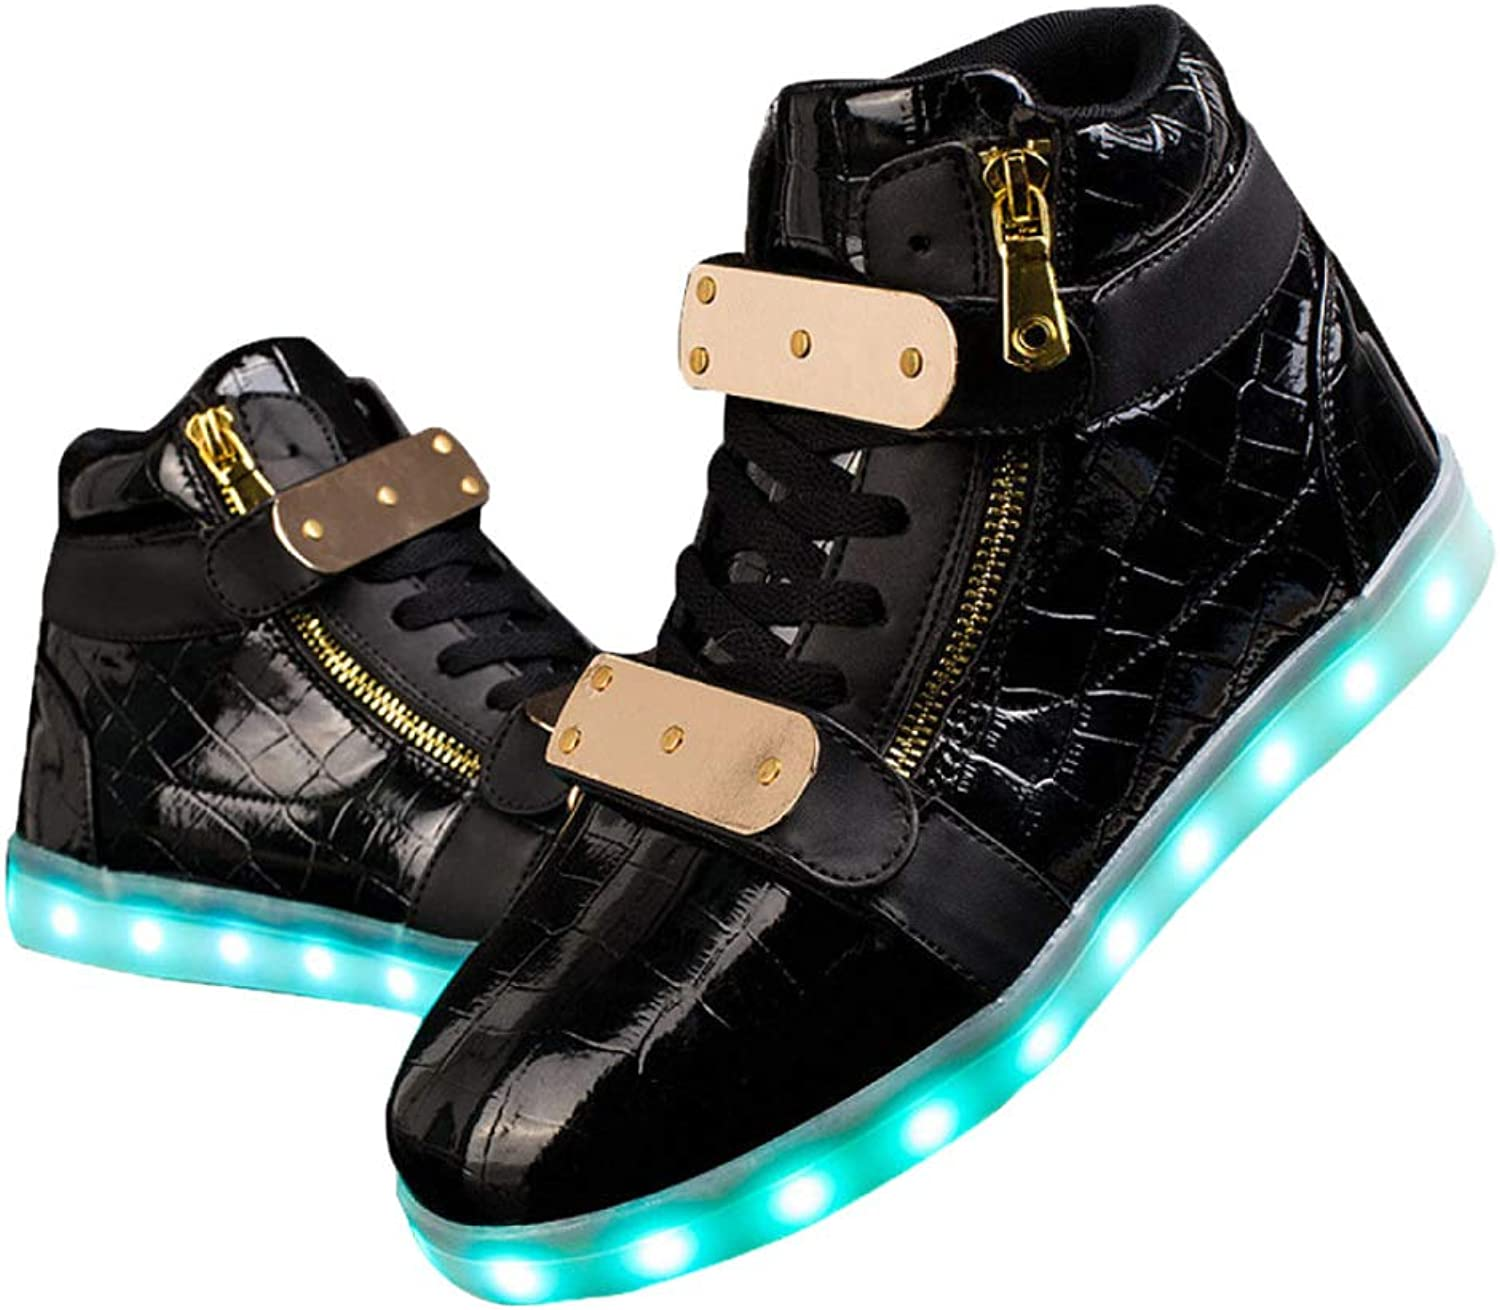 Men's And Women's Shiny Fashion Sneakers